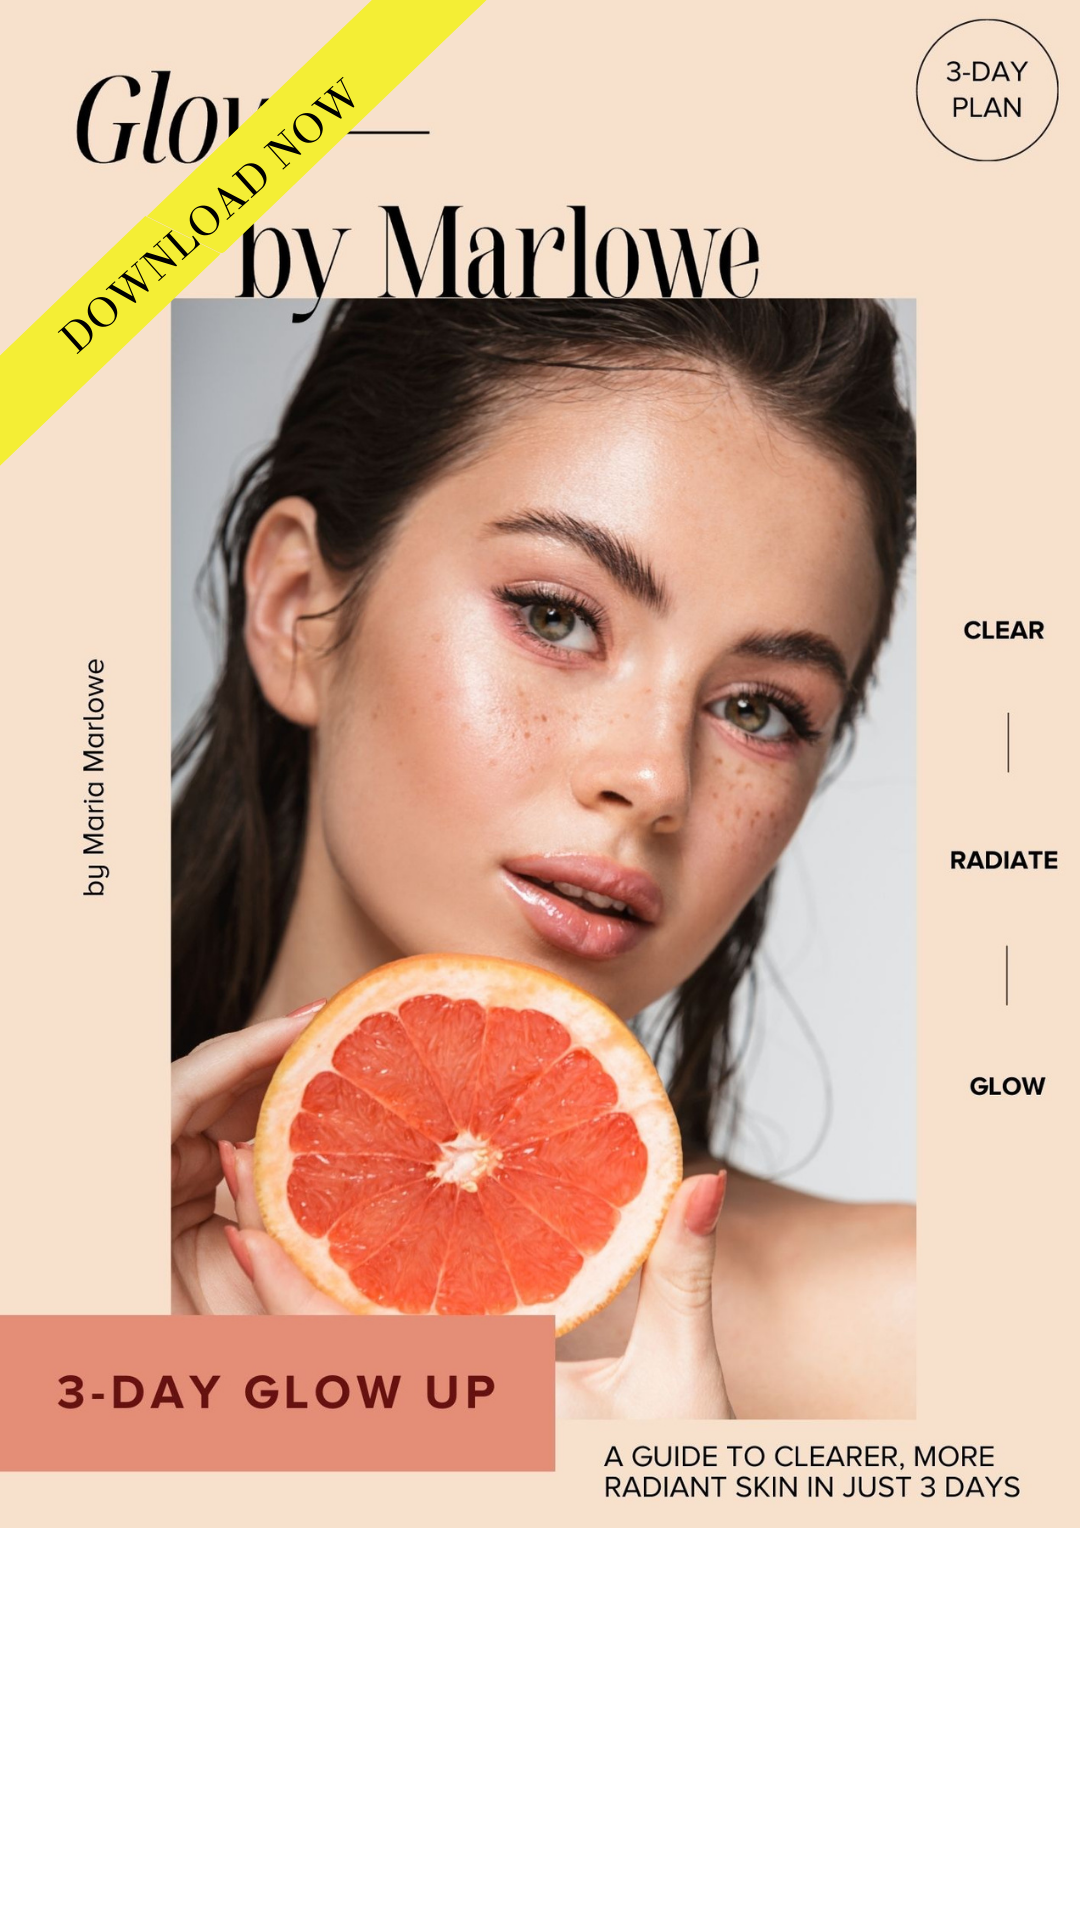 Download the Glow Up Guide